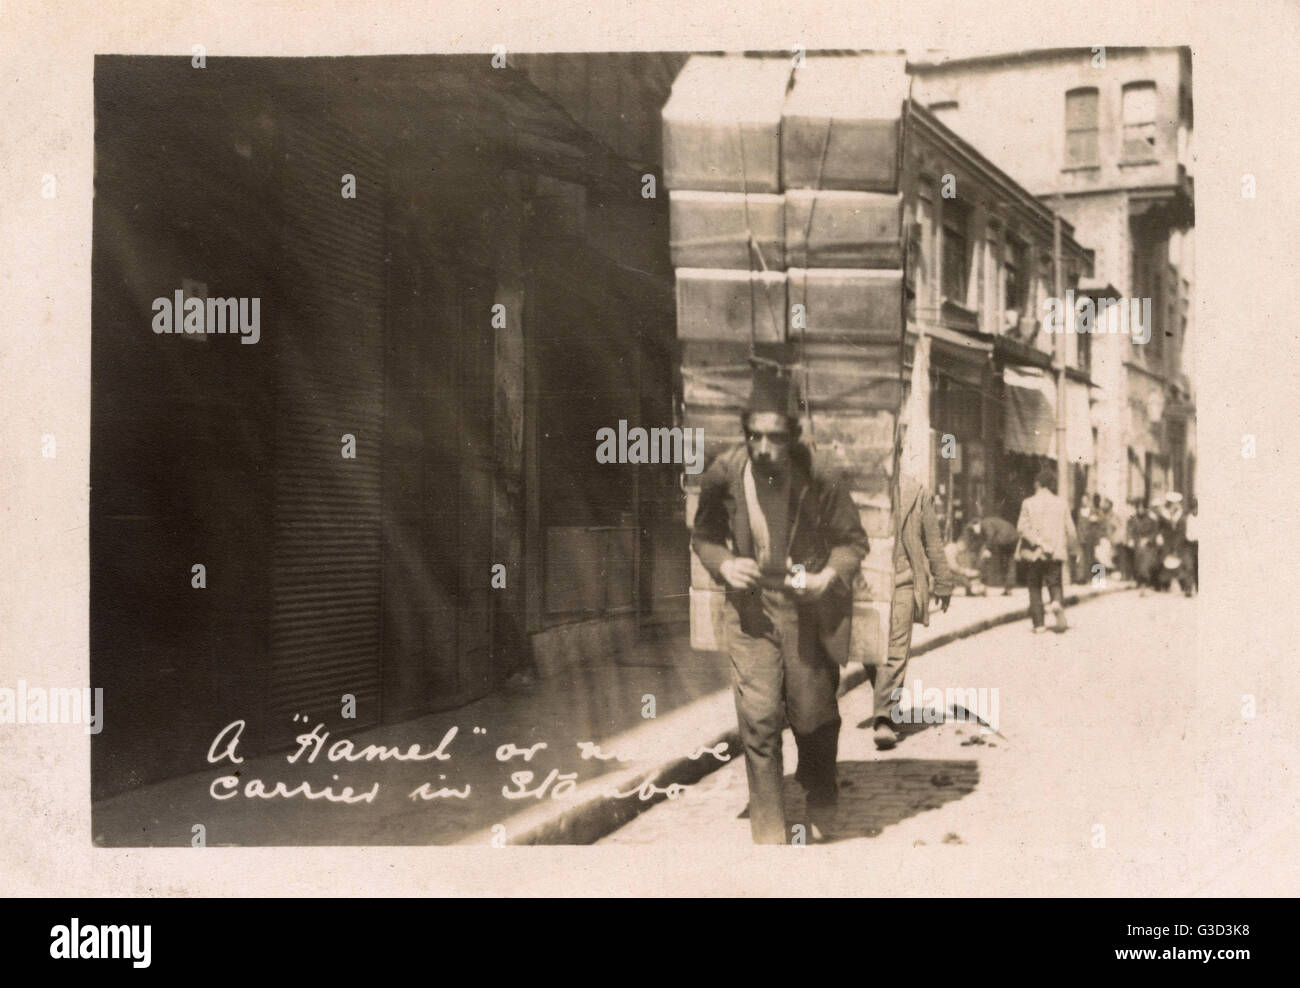 Istanbul, Turkey - Turkish Porter carrying an immense load on his back.     Date: 1923 - Stock Image